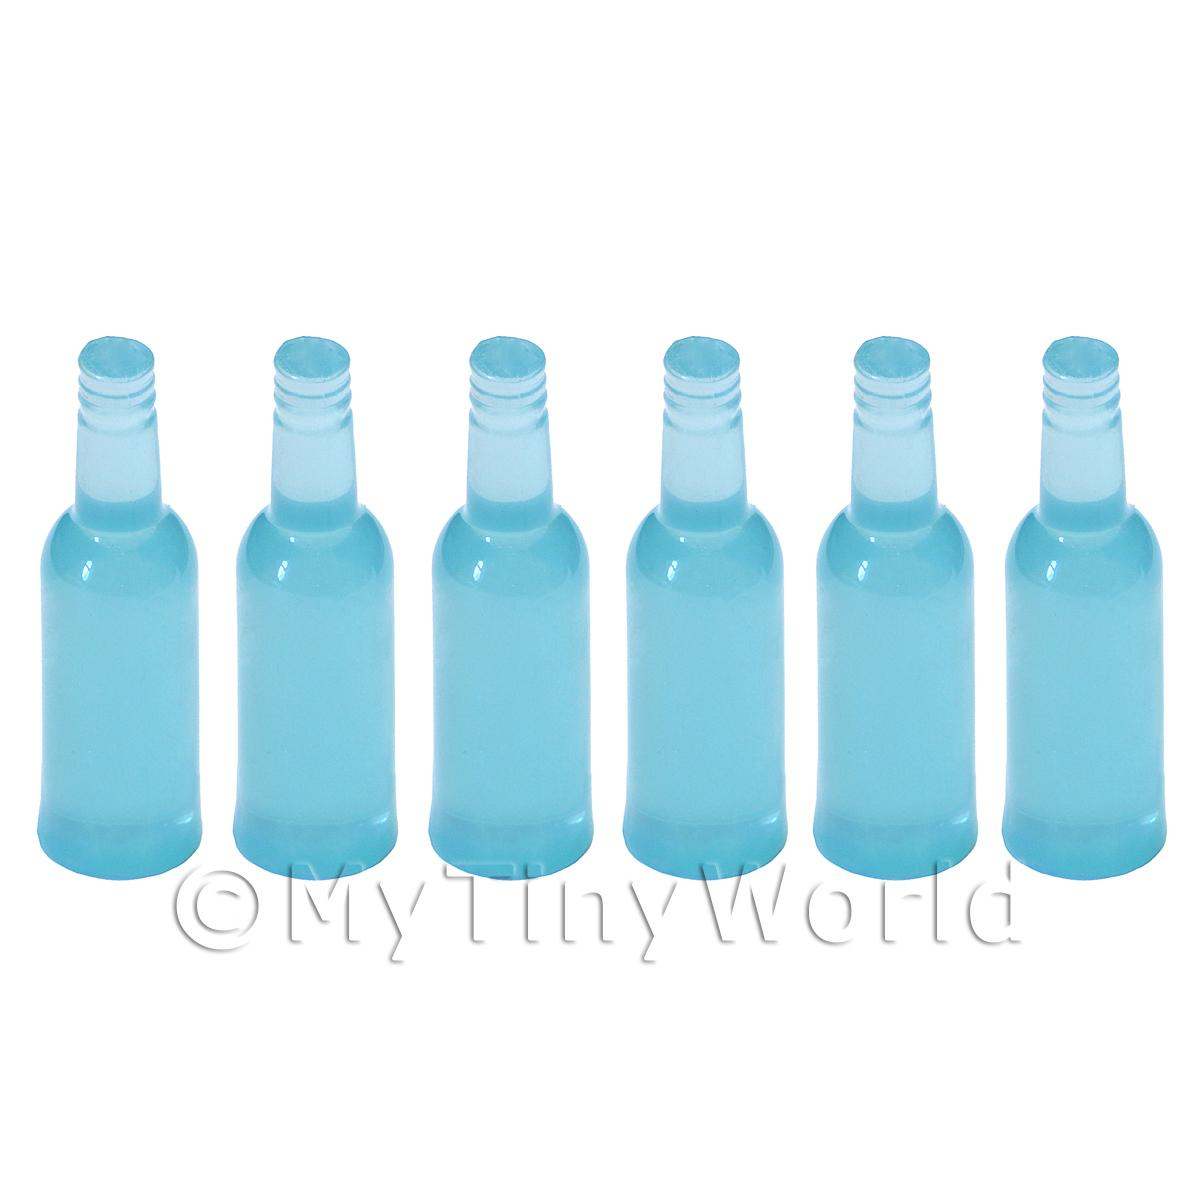 1/12 Scale Dolls House Miniatures  | Set of 6 Pale Blue Dolls House Miniature Resin Drinks Bottles